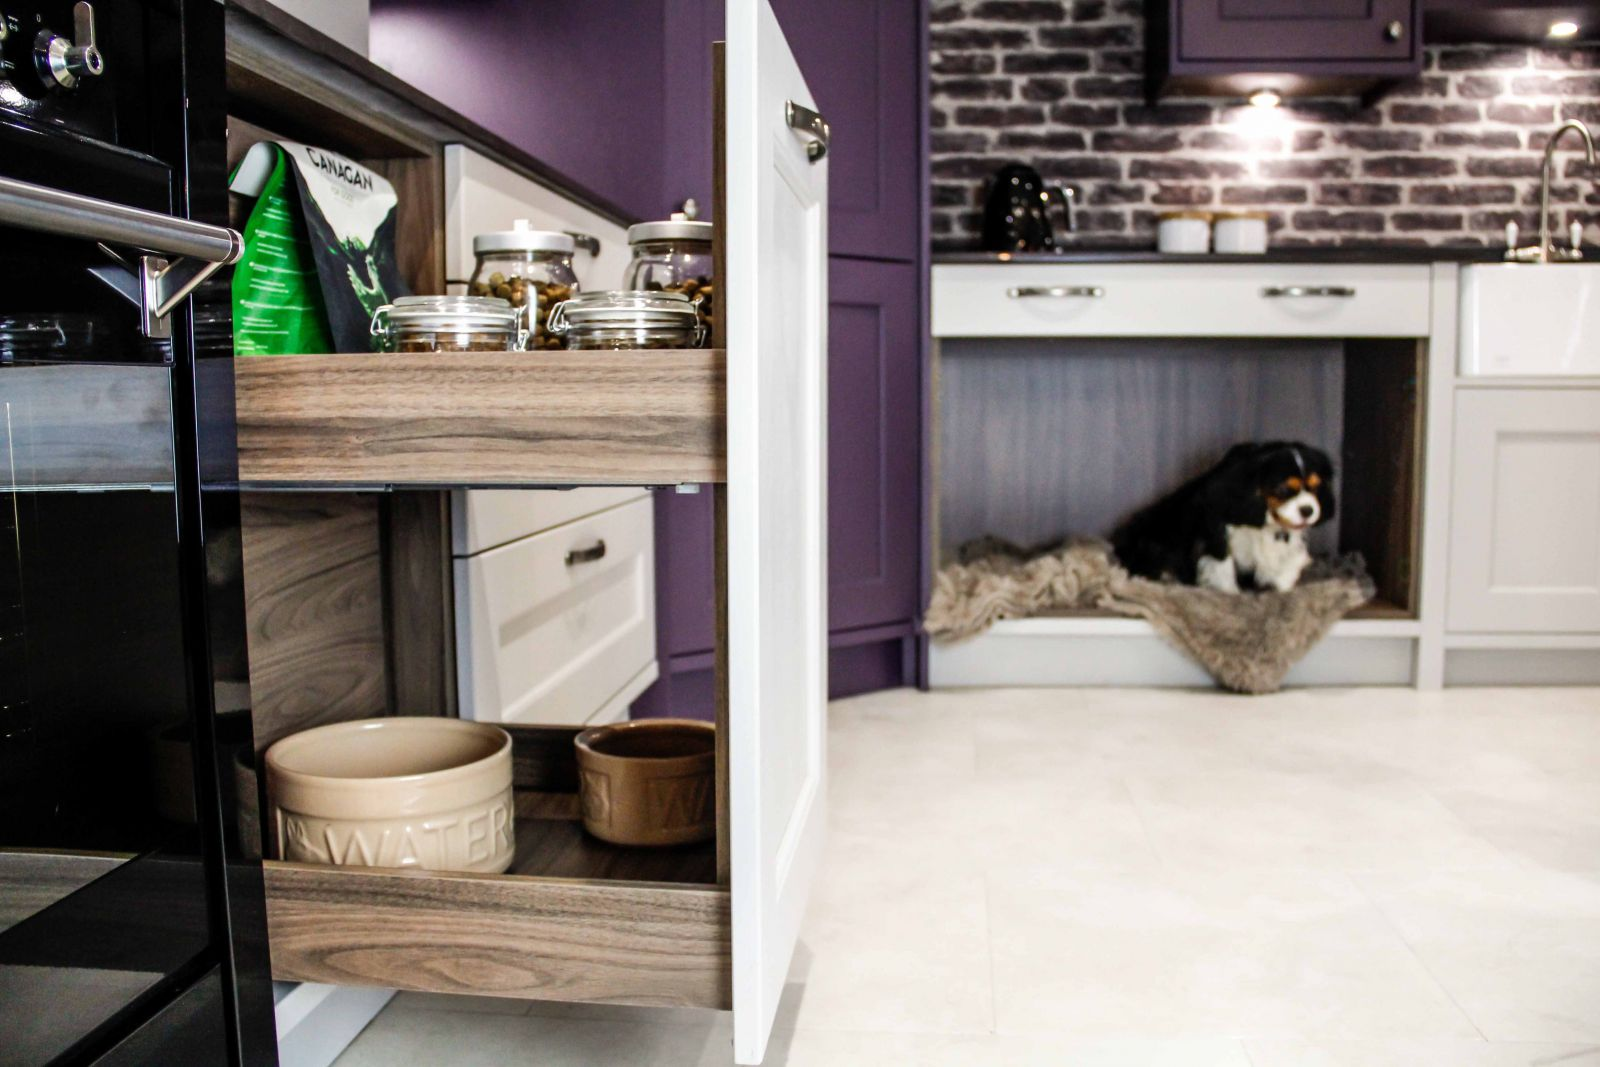 Sigma 3 Kitchens Pet and Dog Friendly Kitchen Design, MagnaSpace from The Signature Collection